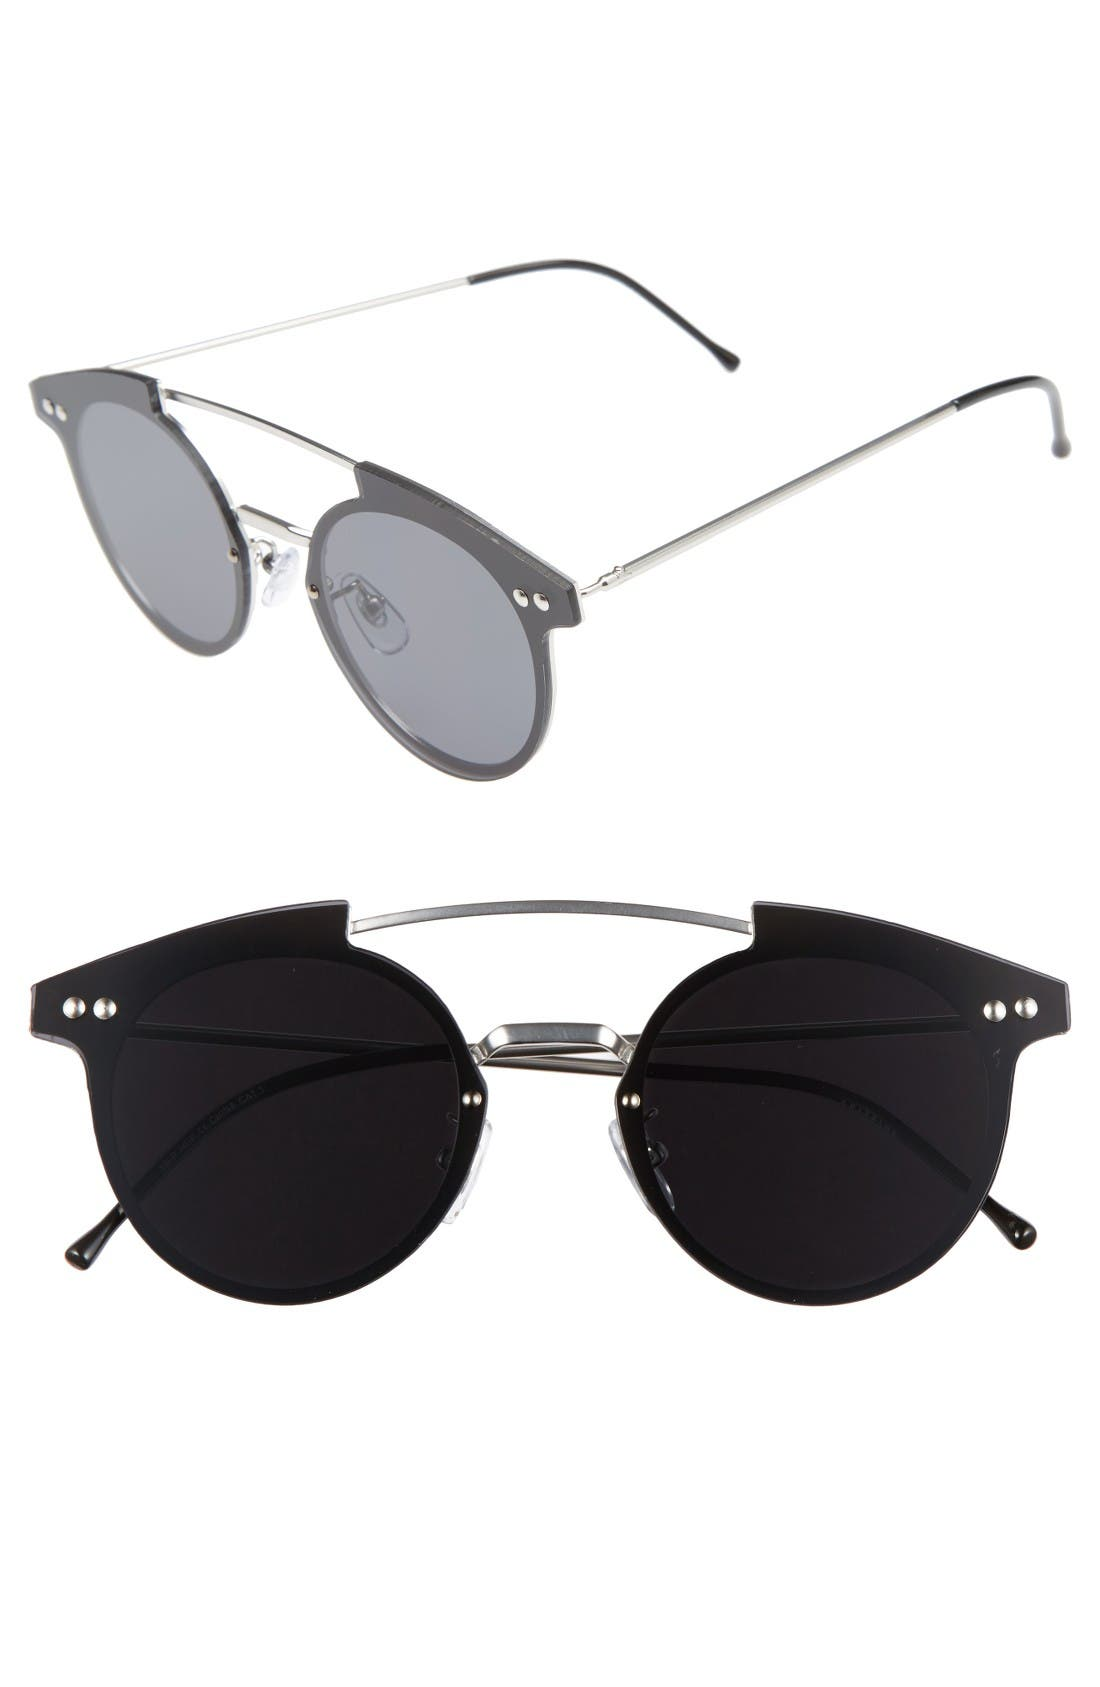 Spitfire Trip Hop 55mm Sunglasses